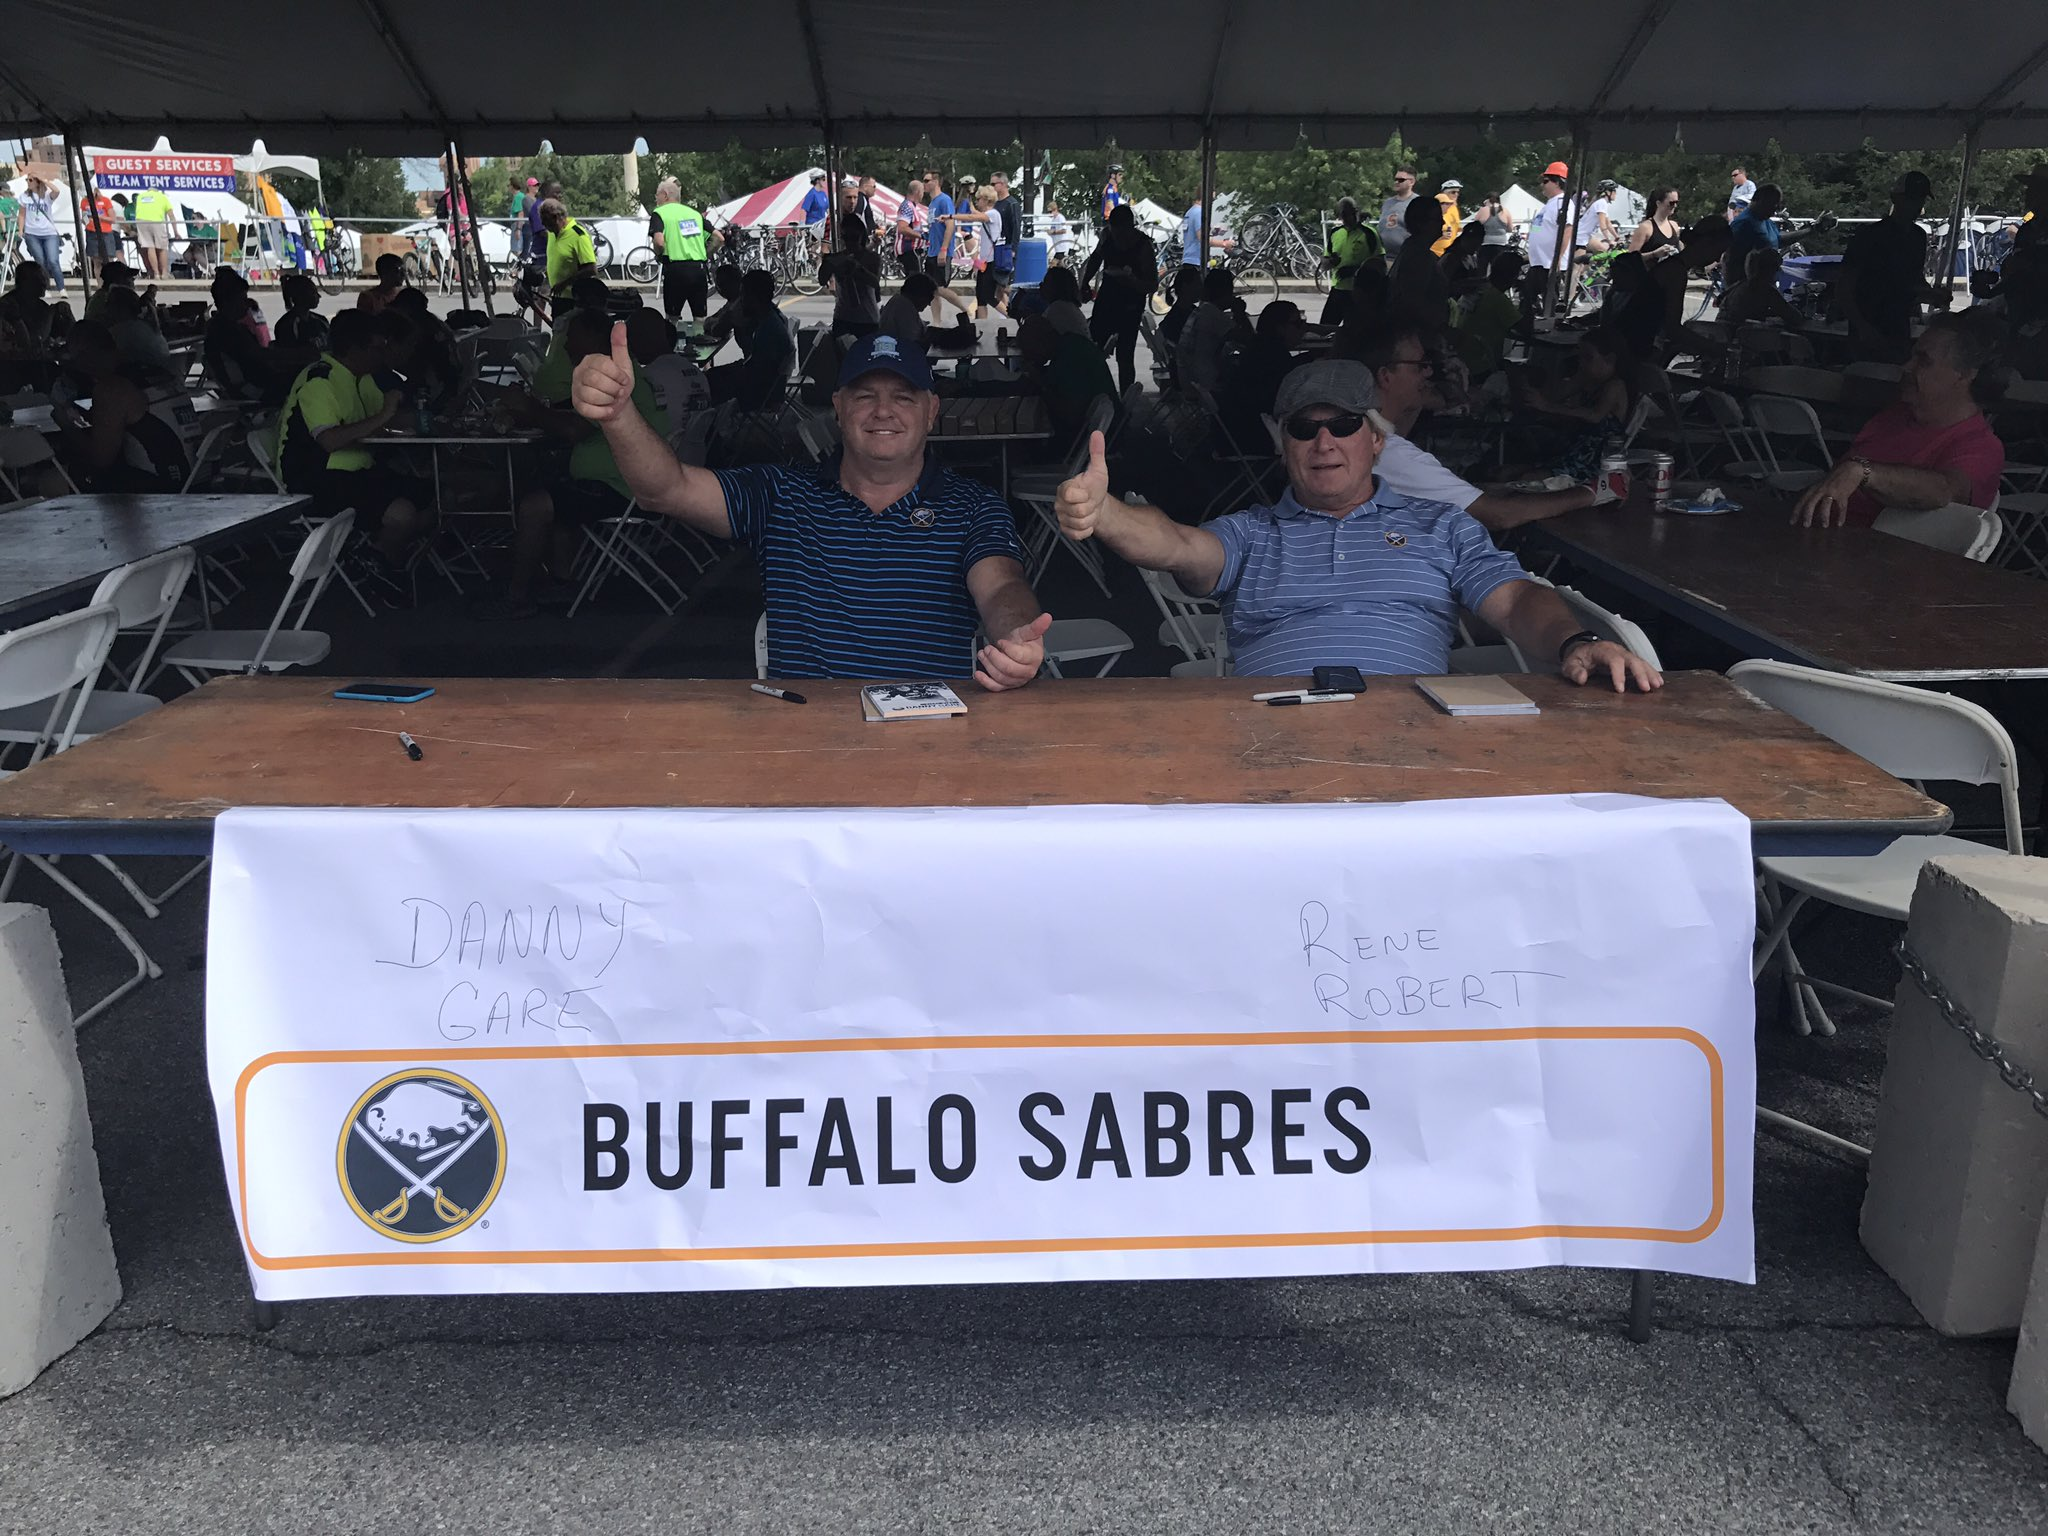 Danny Gare and Rene Robert are here in the Expo Village food tent! #rfr17 @BuffaloSabres https://t.co/QS2waSmb1H